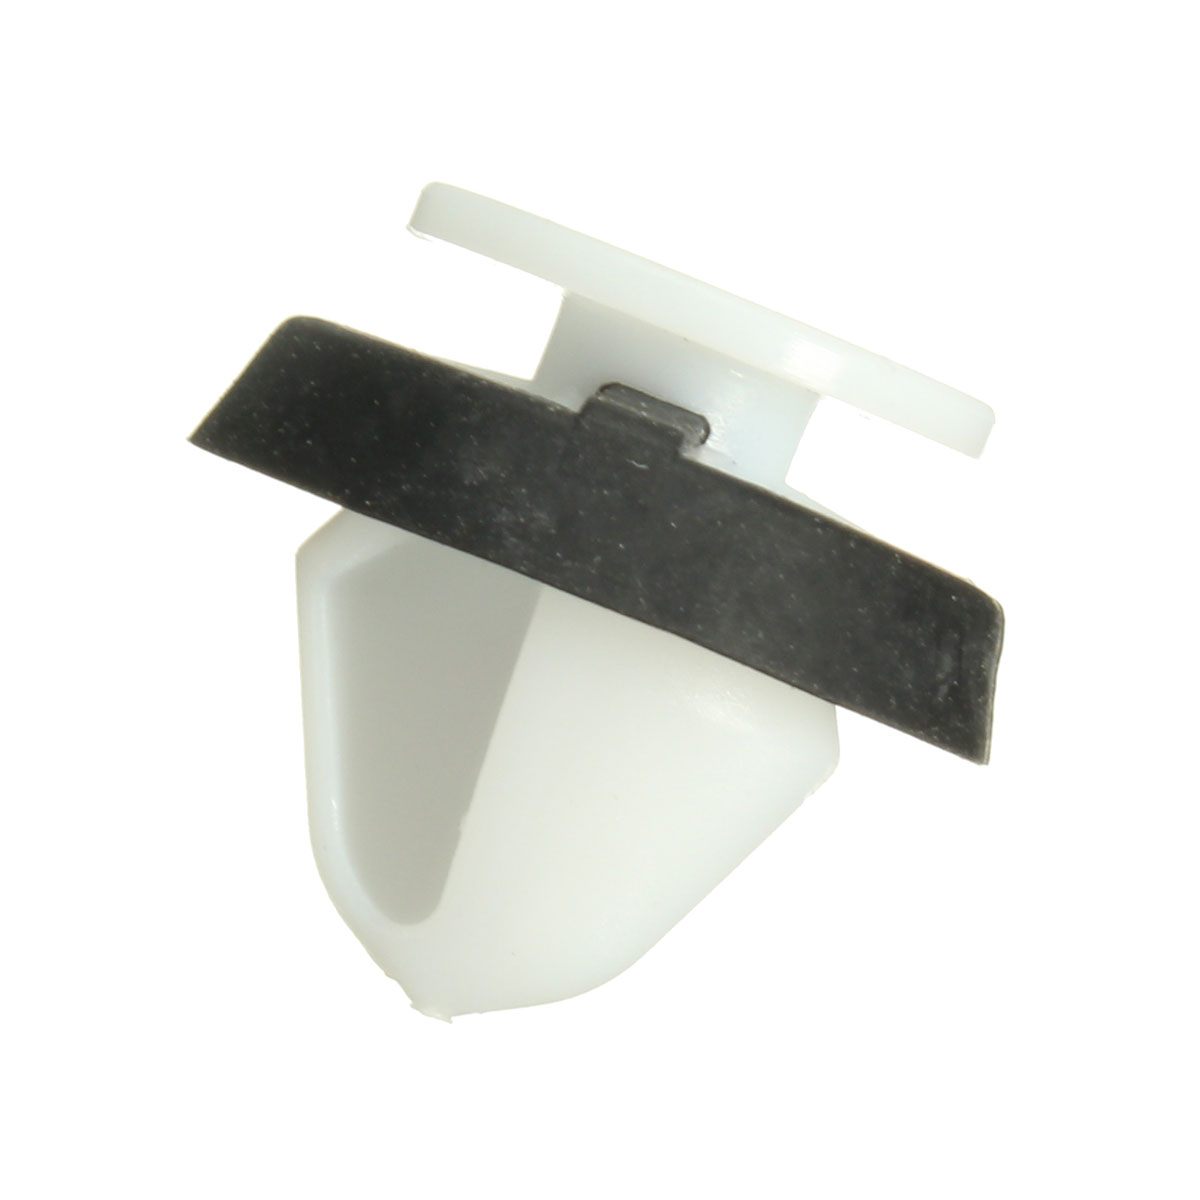 10x Car Interior Trim Door Panel Card Pillar Clips For Peugeot 207 Fuse Box Sale 807 6991y8 In Auto Fastener Clip From Automobiles Motorcycles On